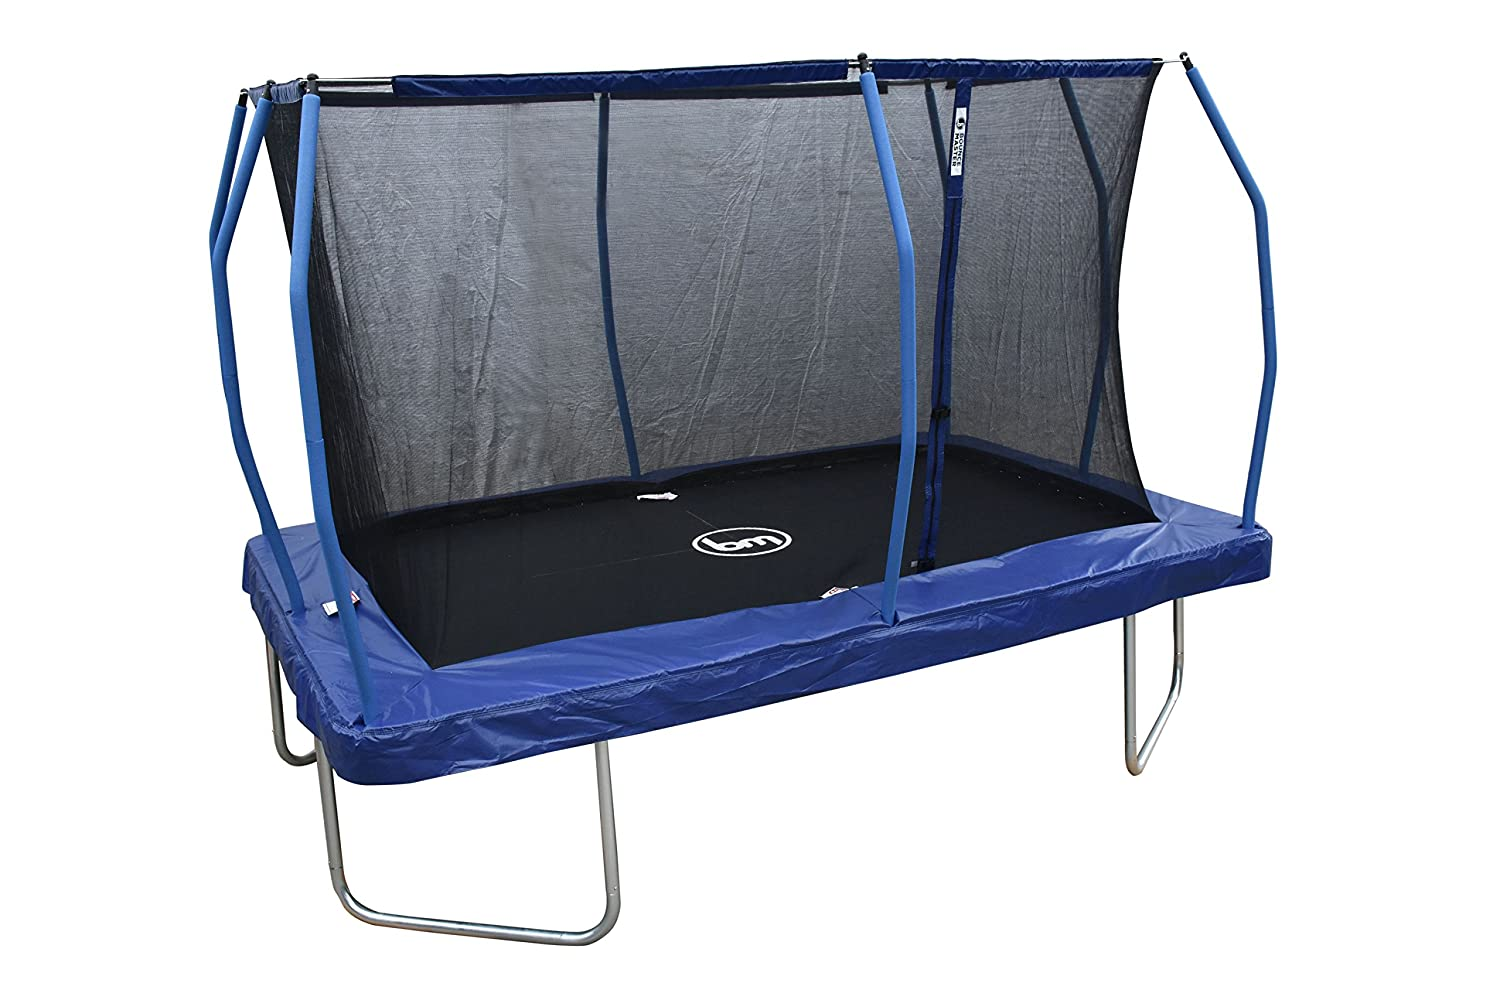 Bounce Master Enclosure 12×8 Rectagular Trampoline